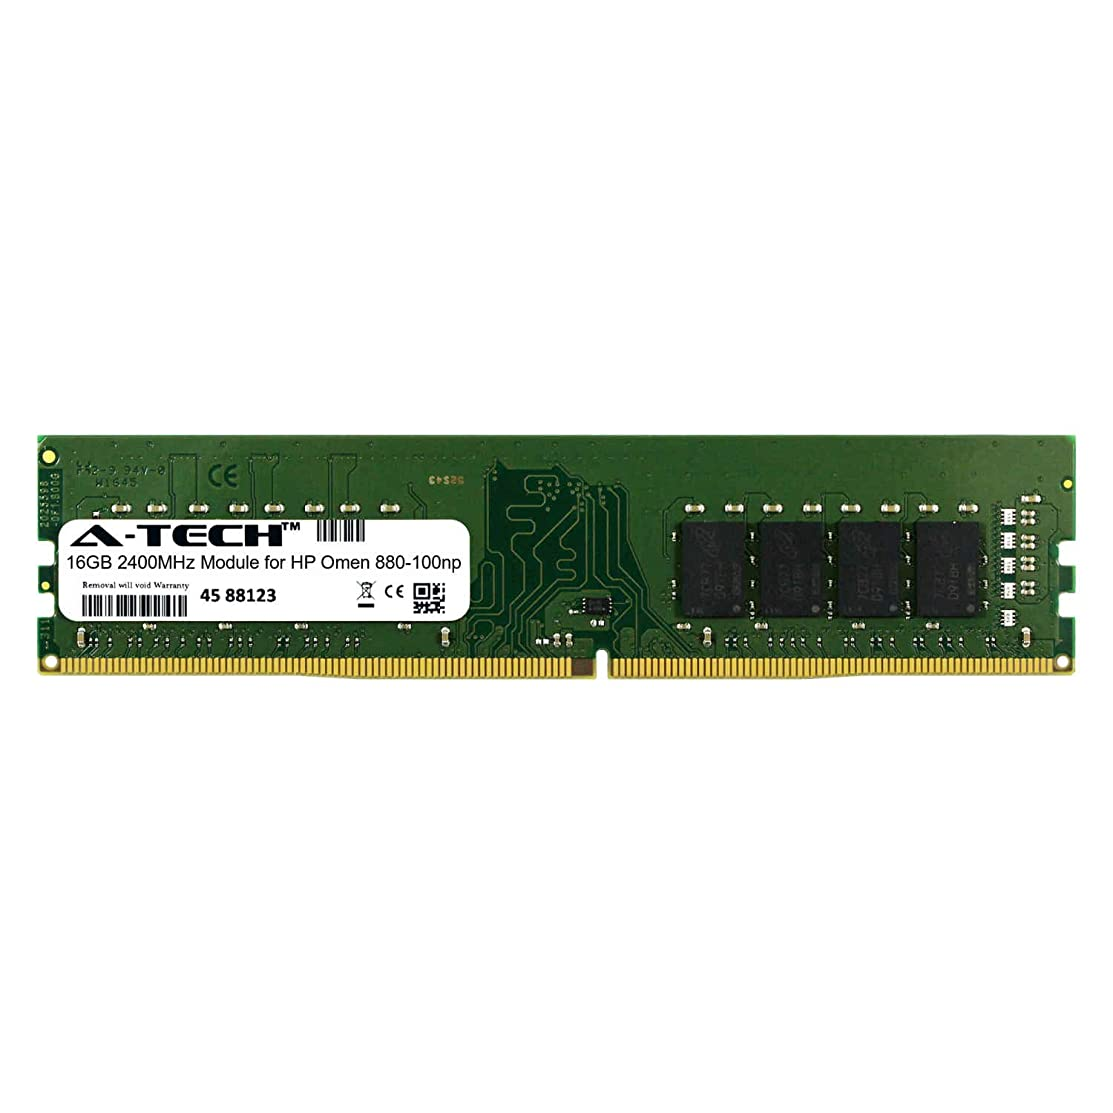 A-Tech 16GB Module for HP Omen 880-100np Desktop & Workstation Motherboard Compatible DDR4 2400Mhz Memory Ram (ATMS282649A25822X1)